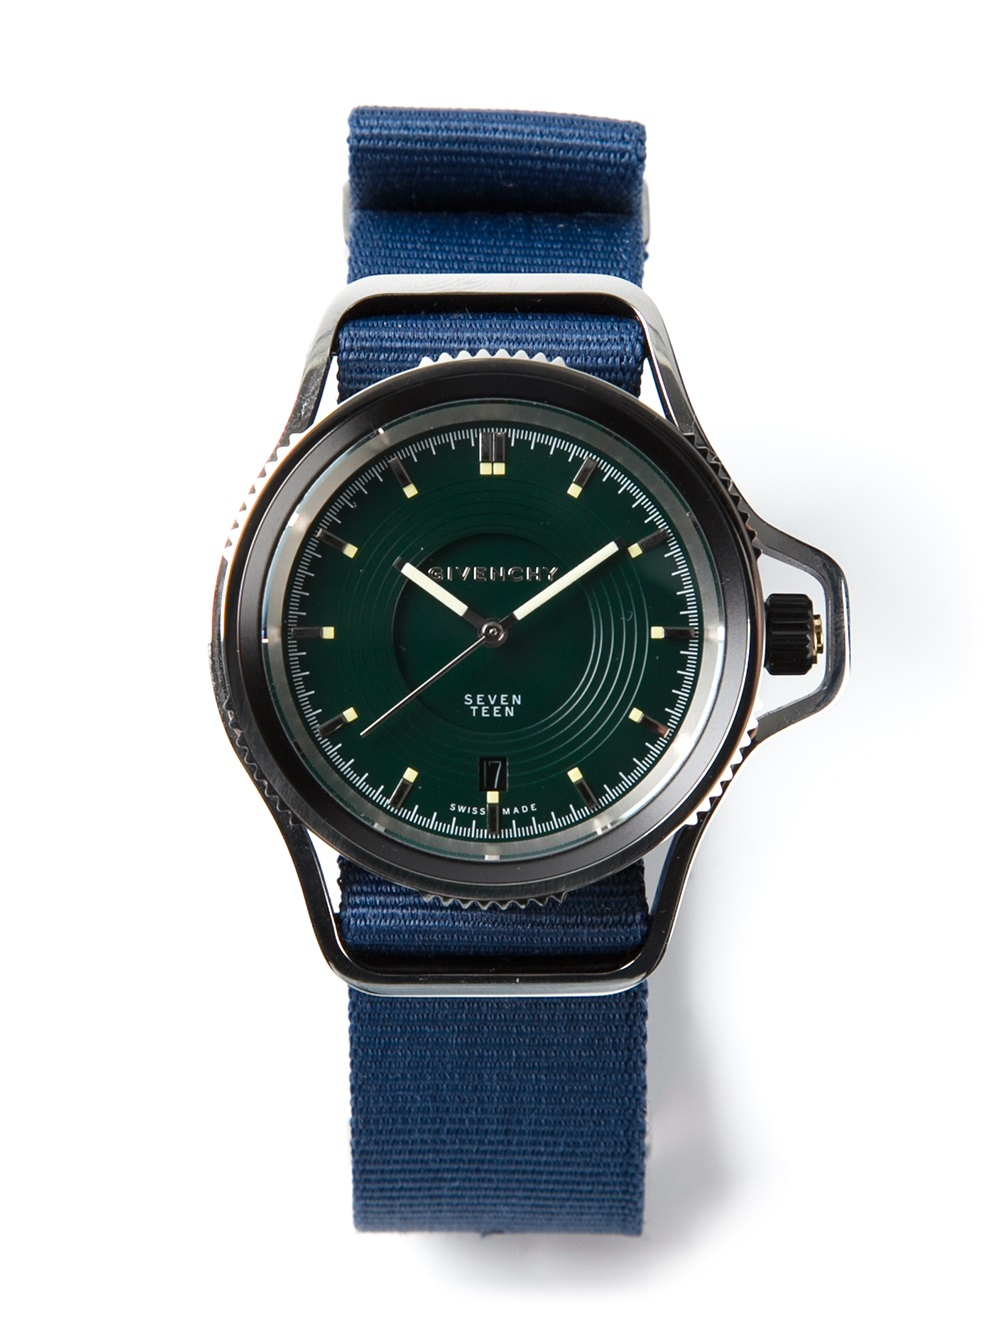 Breitling Bentley Watch >> Givenchy Seventeen Watch in Blue for Men - Lyst